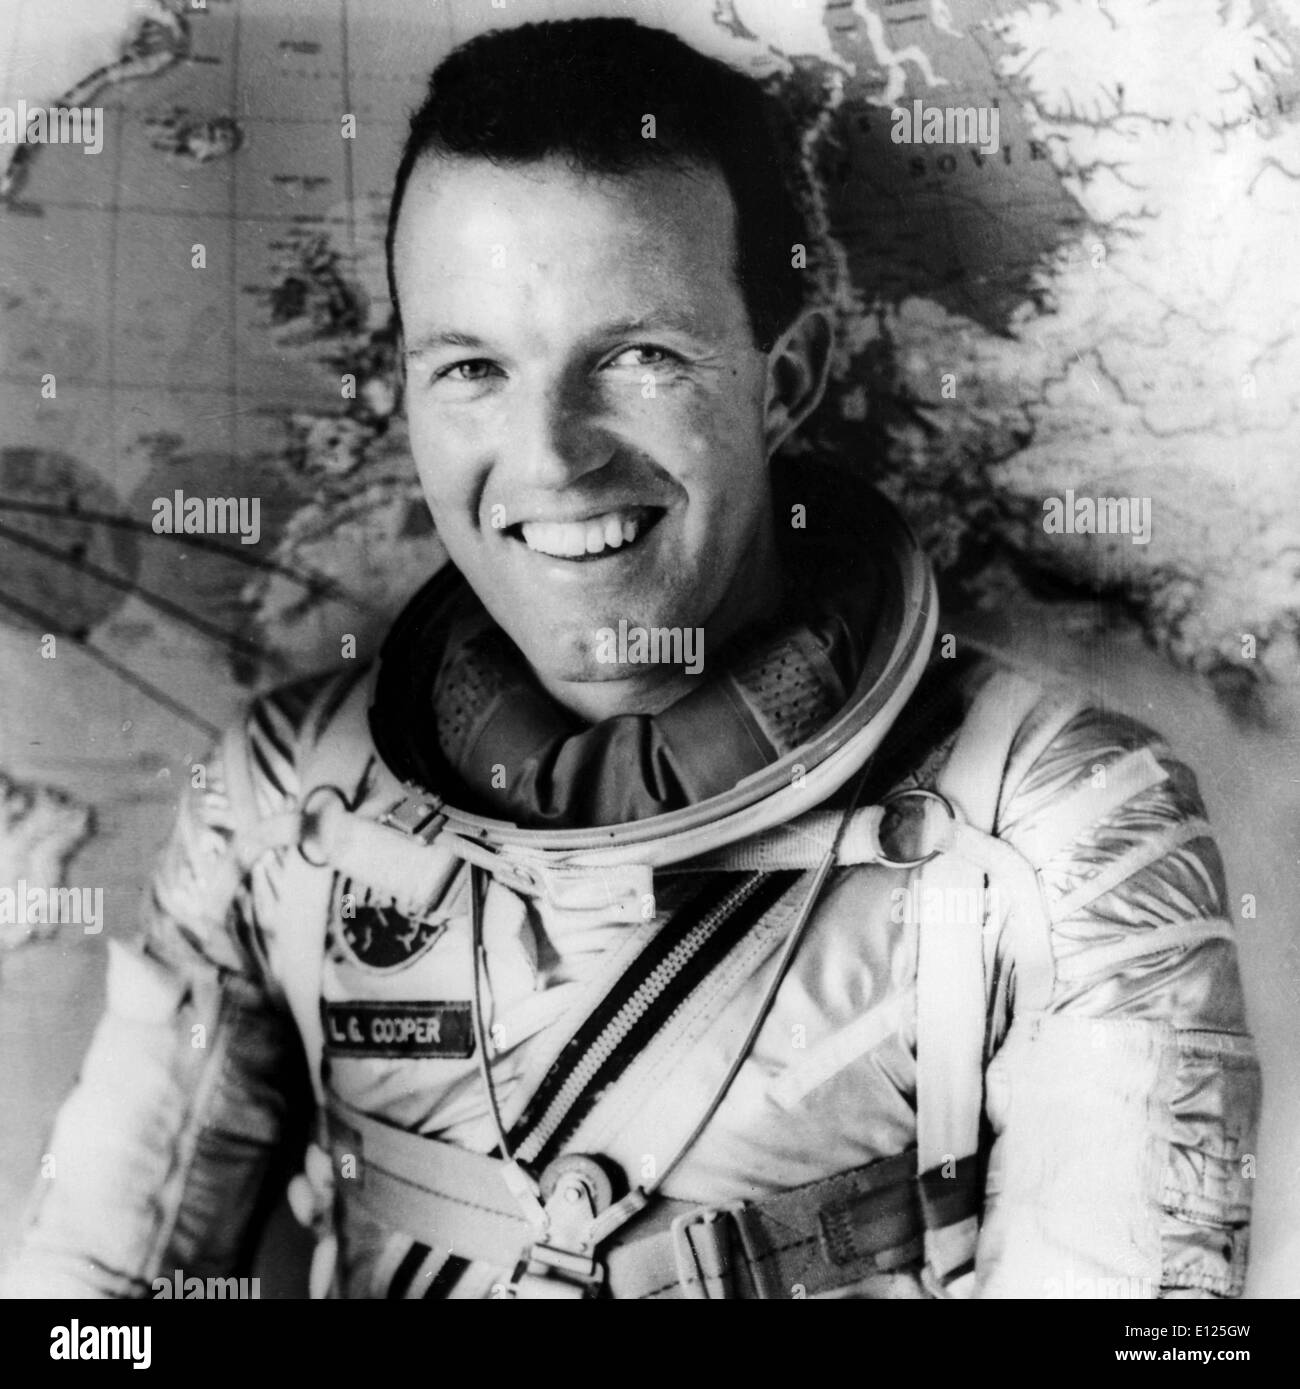 Oct 04, 2004; Cape Canaveral, FL, USA; (File Photo: 07/26/1065) Leroy Gordon Cooper, Jr., ) an original Mercury 7 astronaut, died October 10, 2004 at his home in Ventura, Calif. He was 77 years old. Cooper piloted the sixth and last flight of the Mercury program and later commanded Gemini V. Pictured: American astronaut LT. COLONEL GORDON COOPER, will be in the Gemini V space-craft, which will be in orbit for eight days . LT. COOPER has already done twenty-two orbits on his own.. (Credit Image: KEYSTONE Pictures USA/ZUMAPRESS.com) - Stock Image